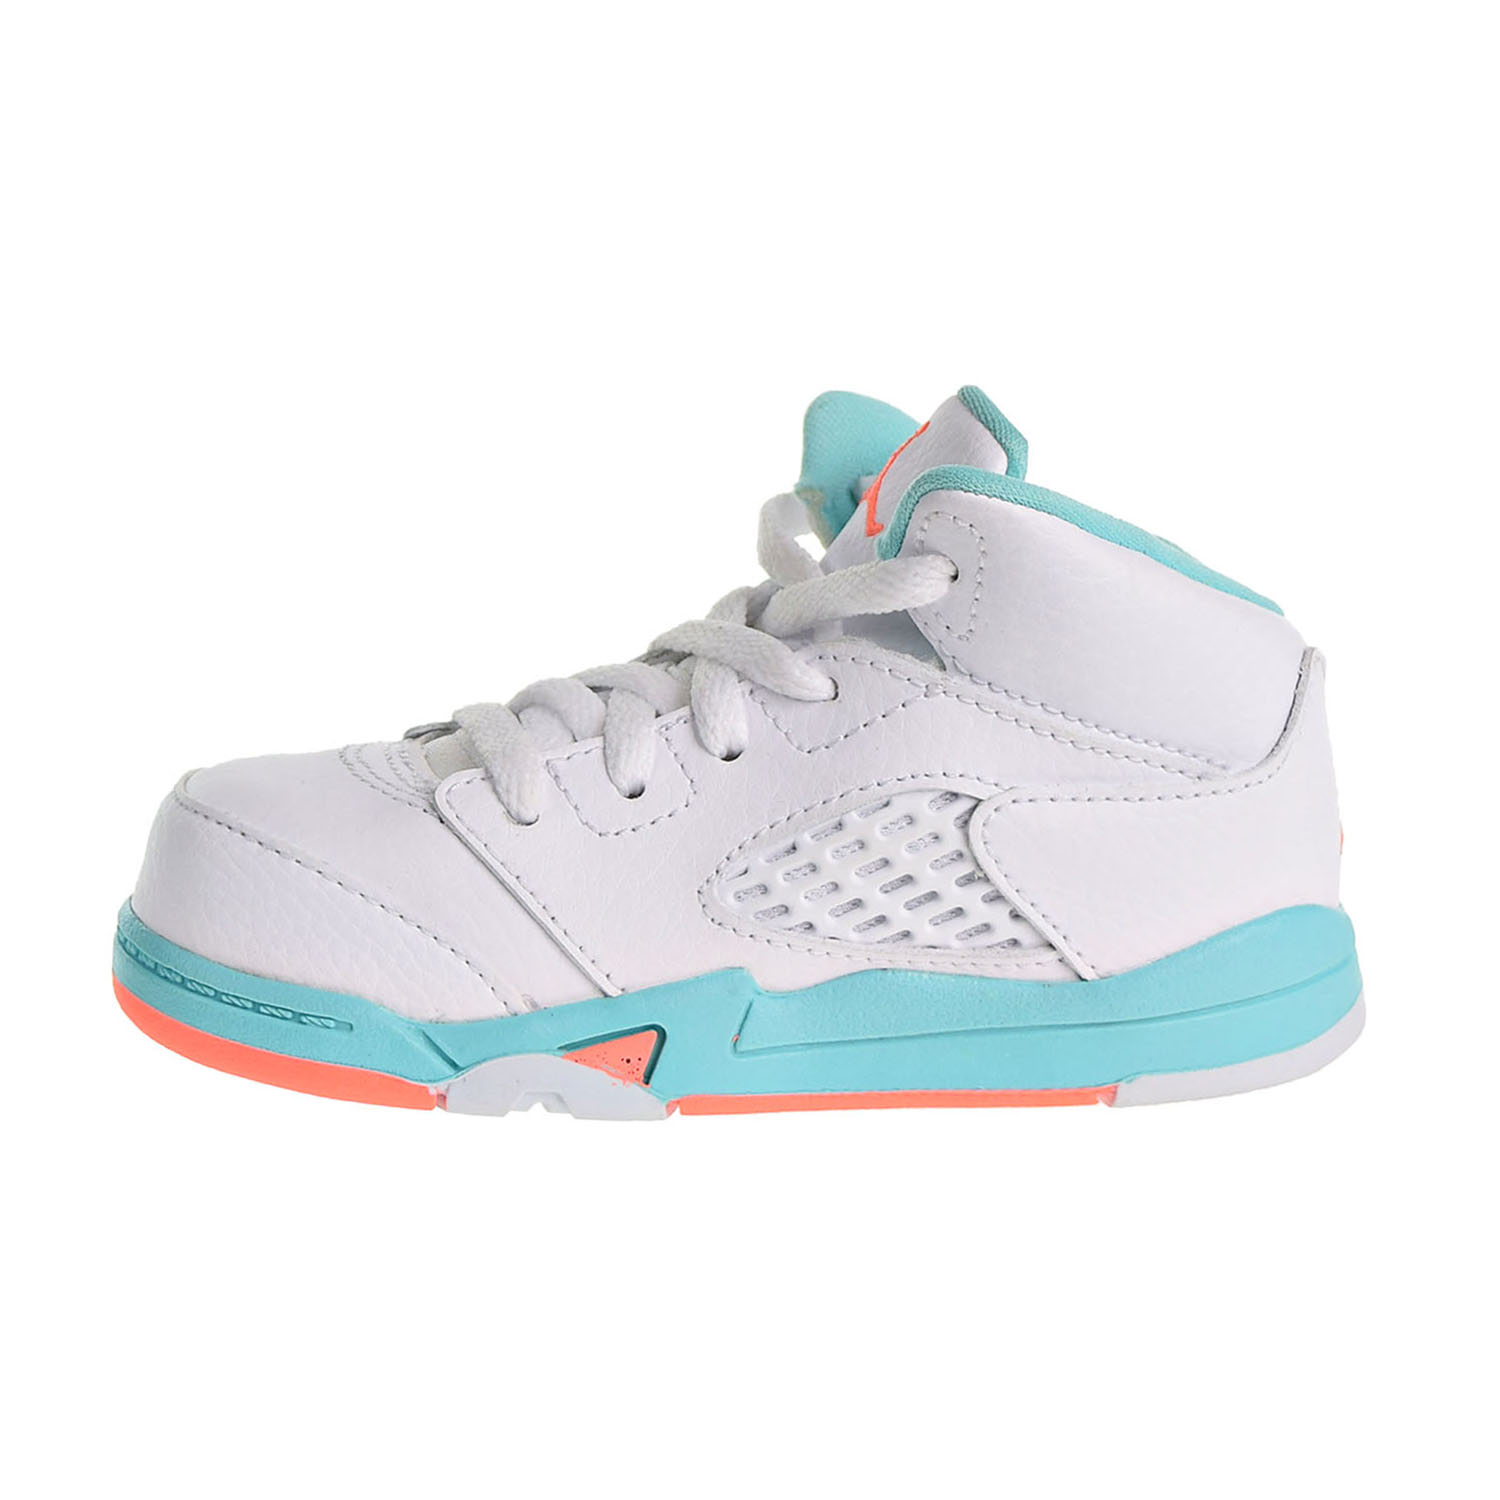 9f948749043 Jordan 5 Retro GT Toddler's Shoes White/Crimson Pulse/Light Aqua 725172-100